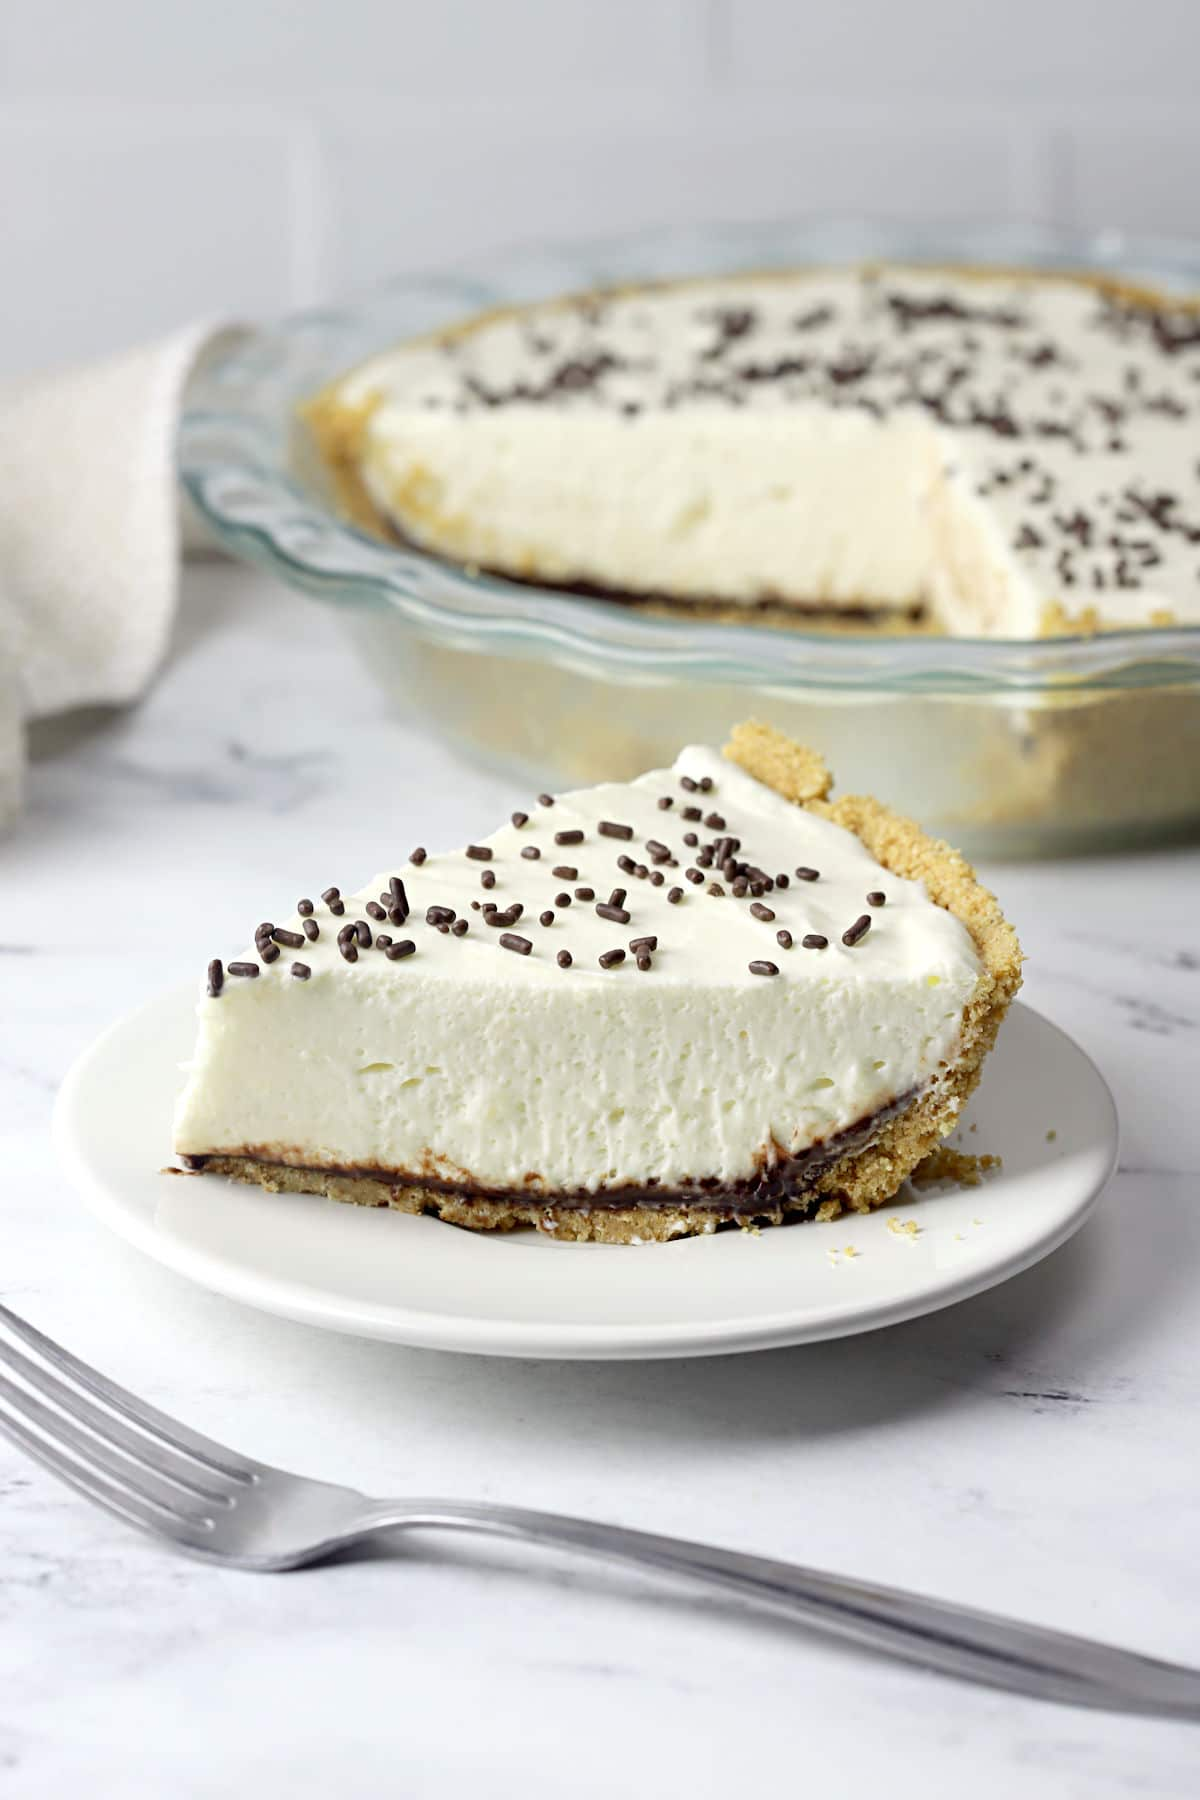 A slice of pie with layers of hot fudge and white marshmallow filling, with a sliced pie sitting in the background.